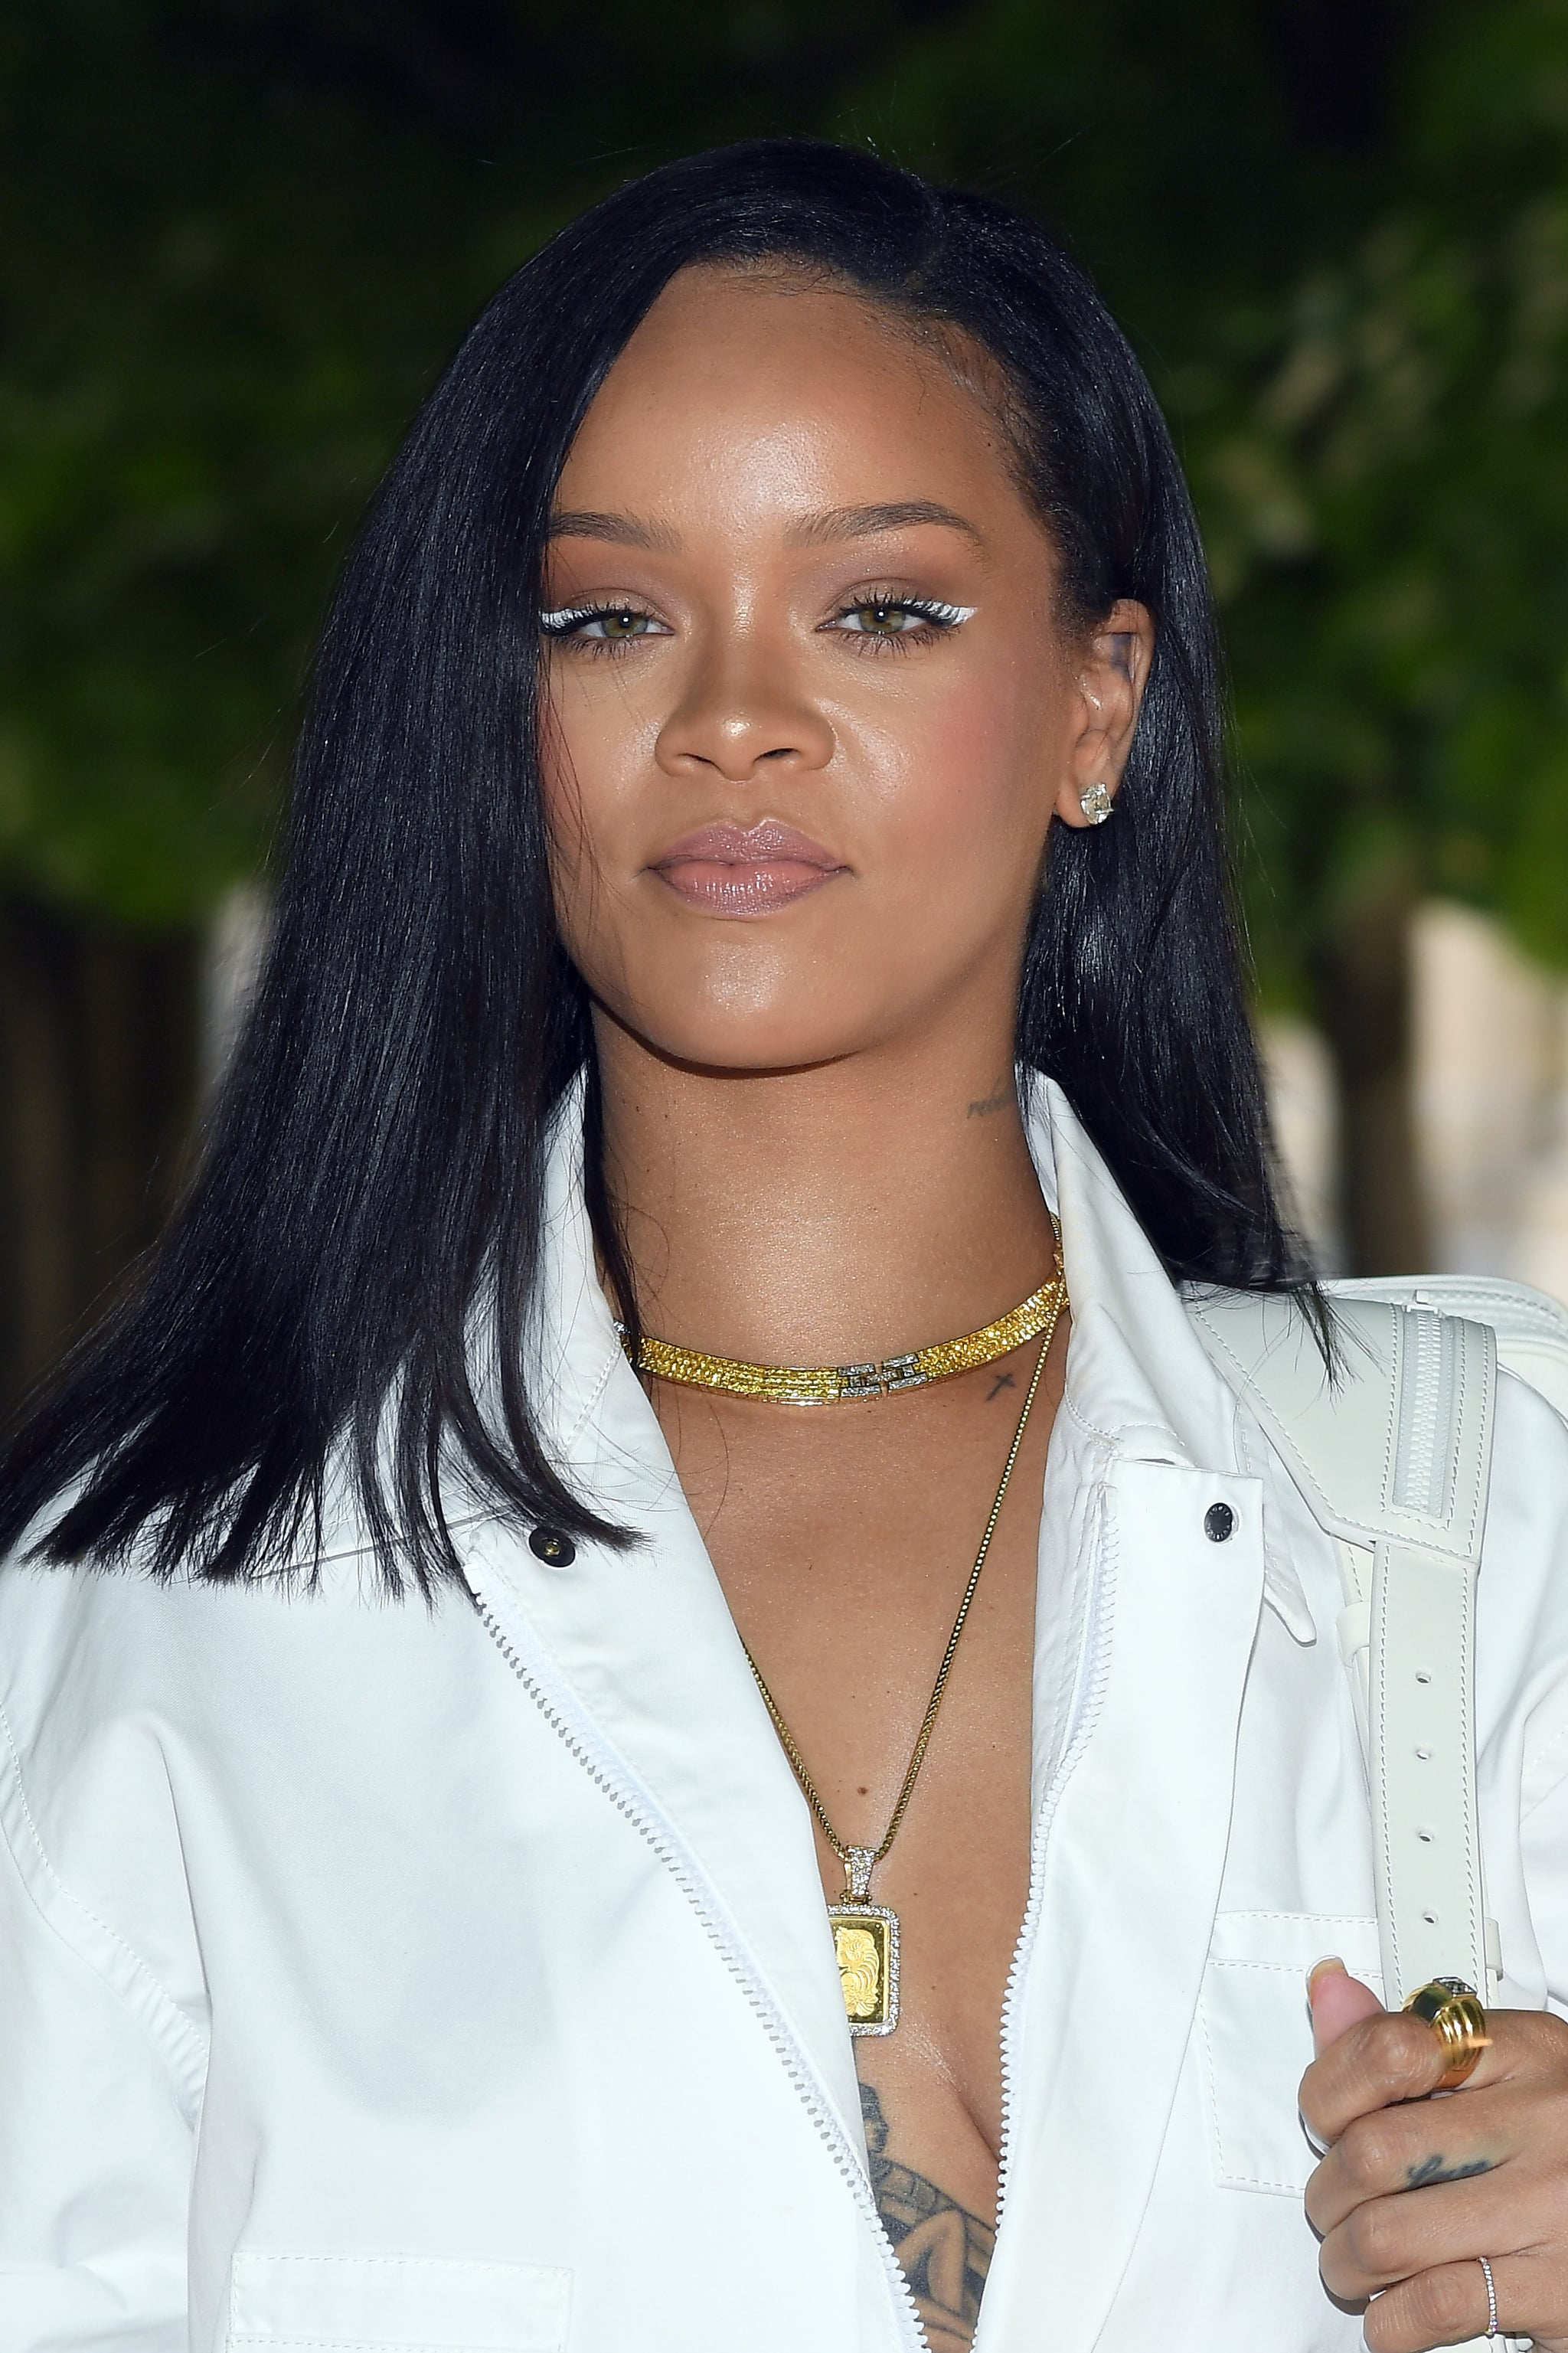 PARIS, FRANCE - JUNE 21:  Rihanna attends the Louis Vuitton Menswear Spring/Summer 2019 show as part of Paris Fashion Week on June 21, 2018 in Paris, France.  (Photo by Pascal Le Segretain/Getty Images)